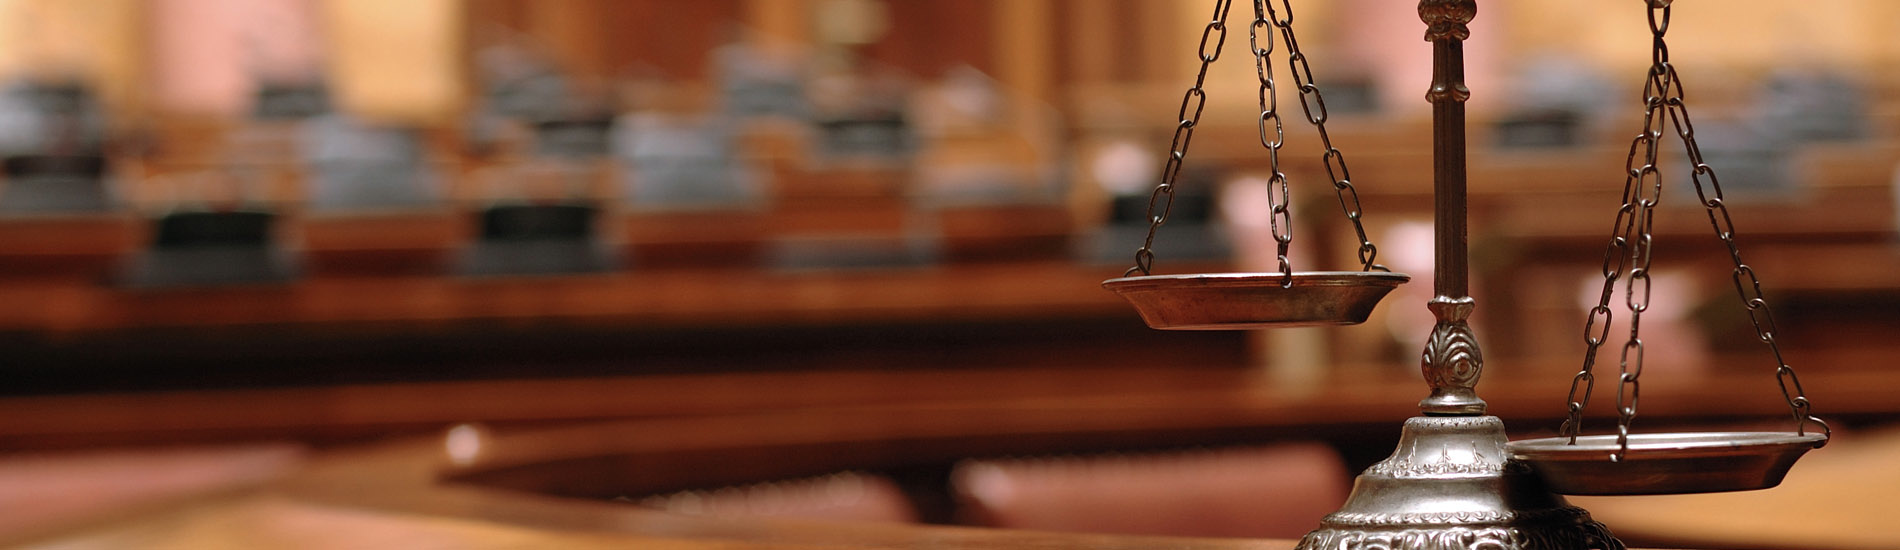 2.Legal-Services-Banner-HOMEPAGE